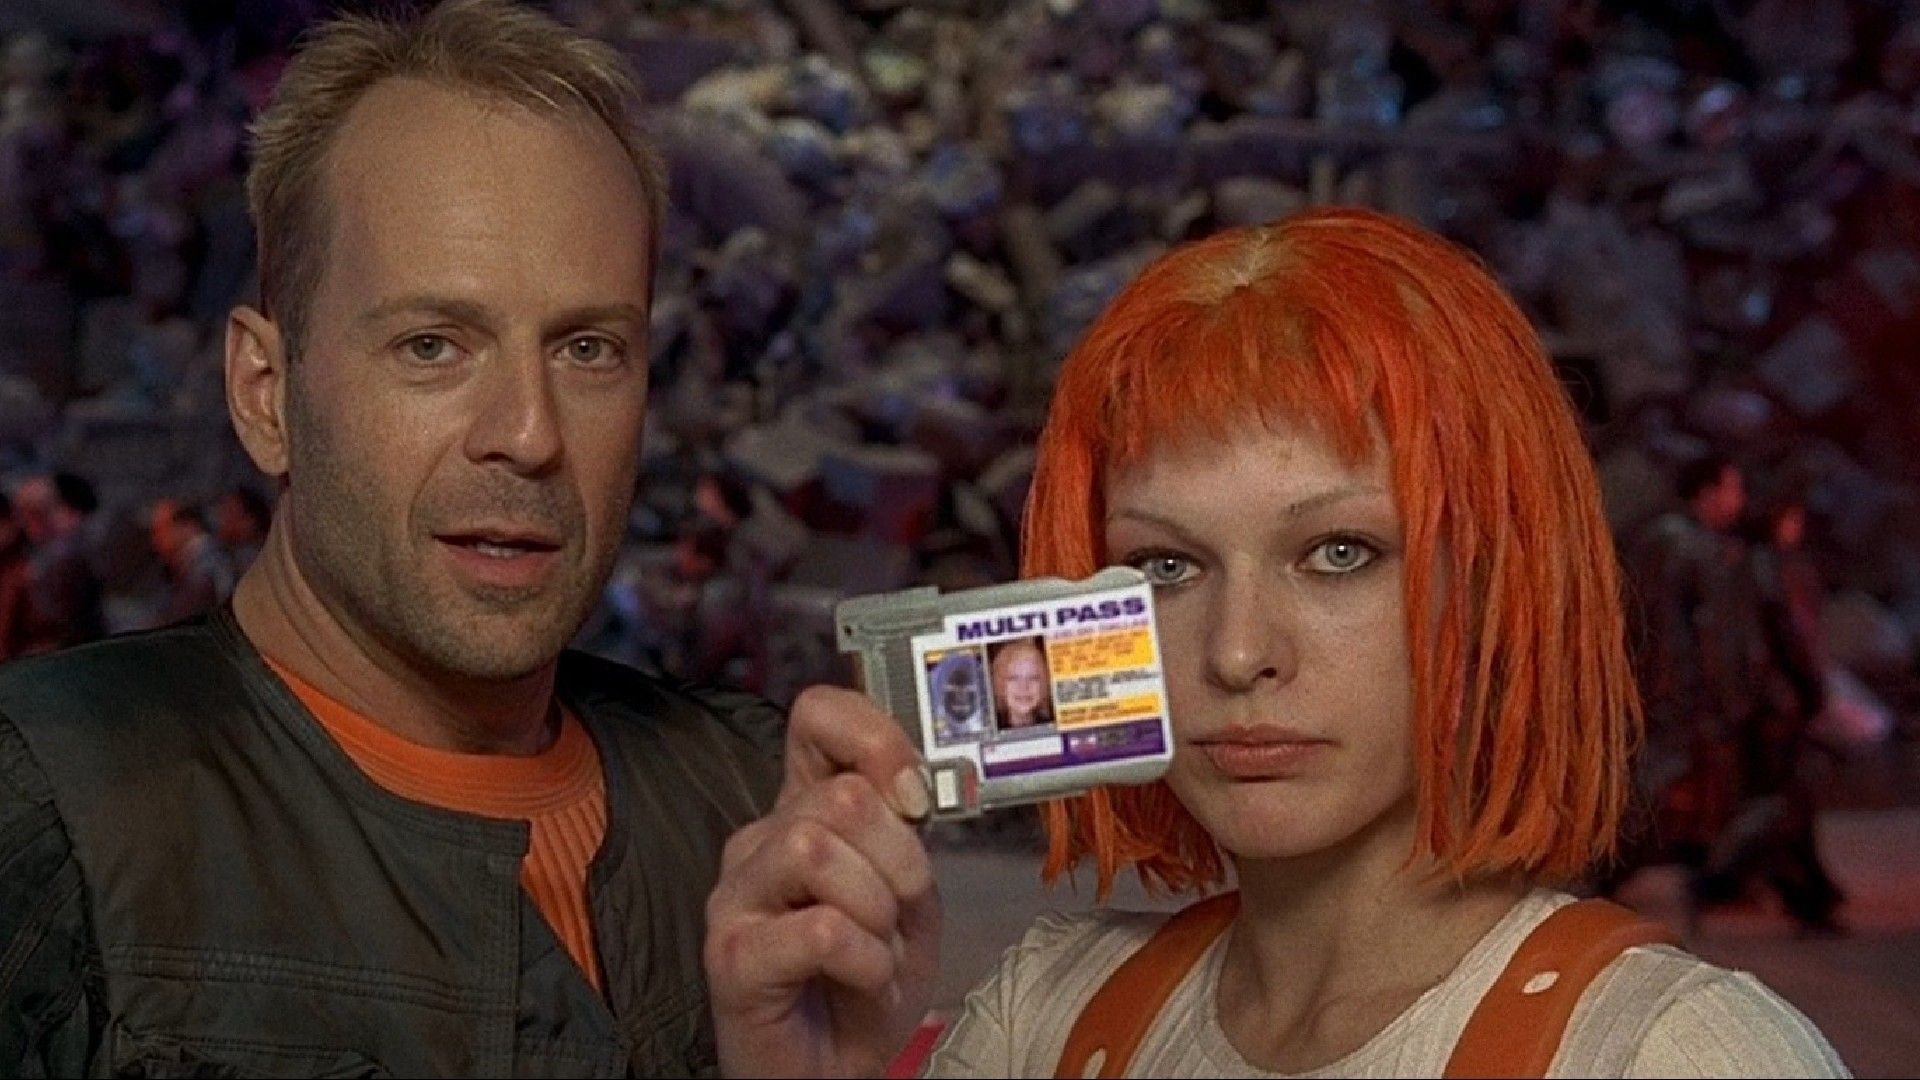 http://cdn.collider.com/wp-content/uploads/2016/03/the-fifth-element.jpg